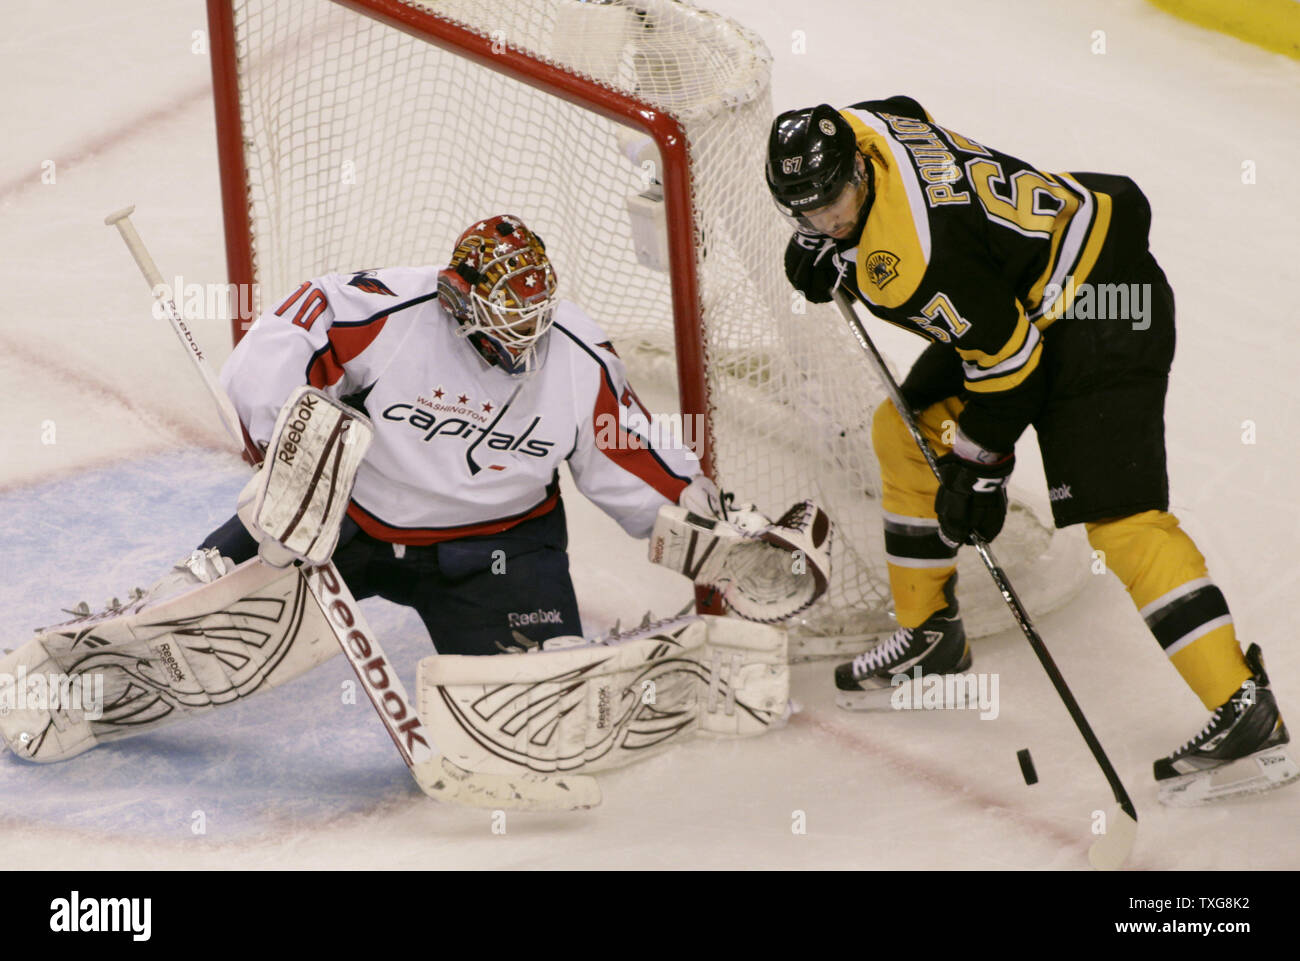 Braden Holtby High Resolution Stock Photography And Images Alamy